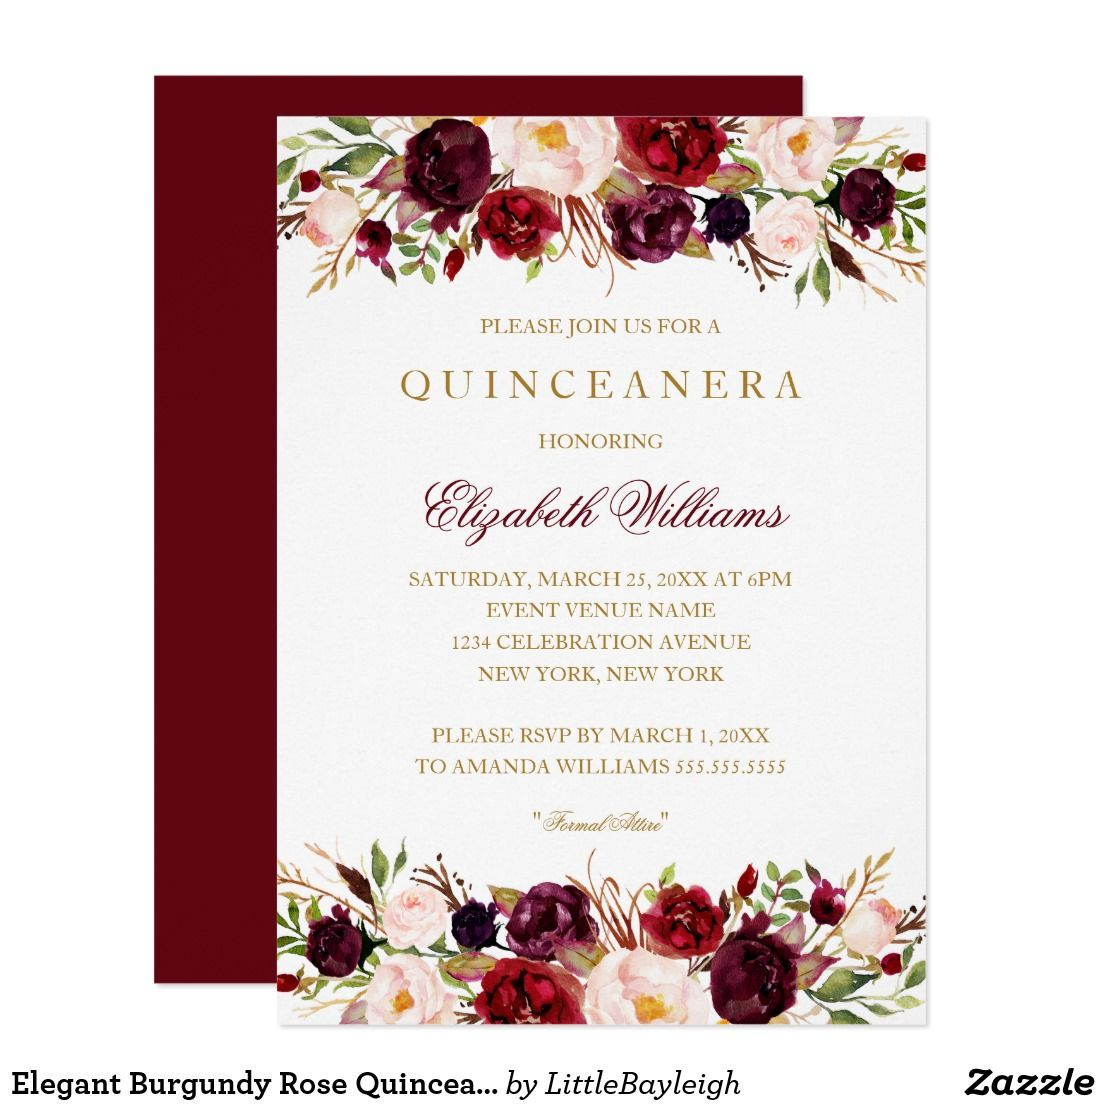 Elegant Burgundy Rose Quinceanera Invitation | Pinterest ...